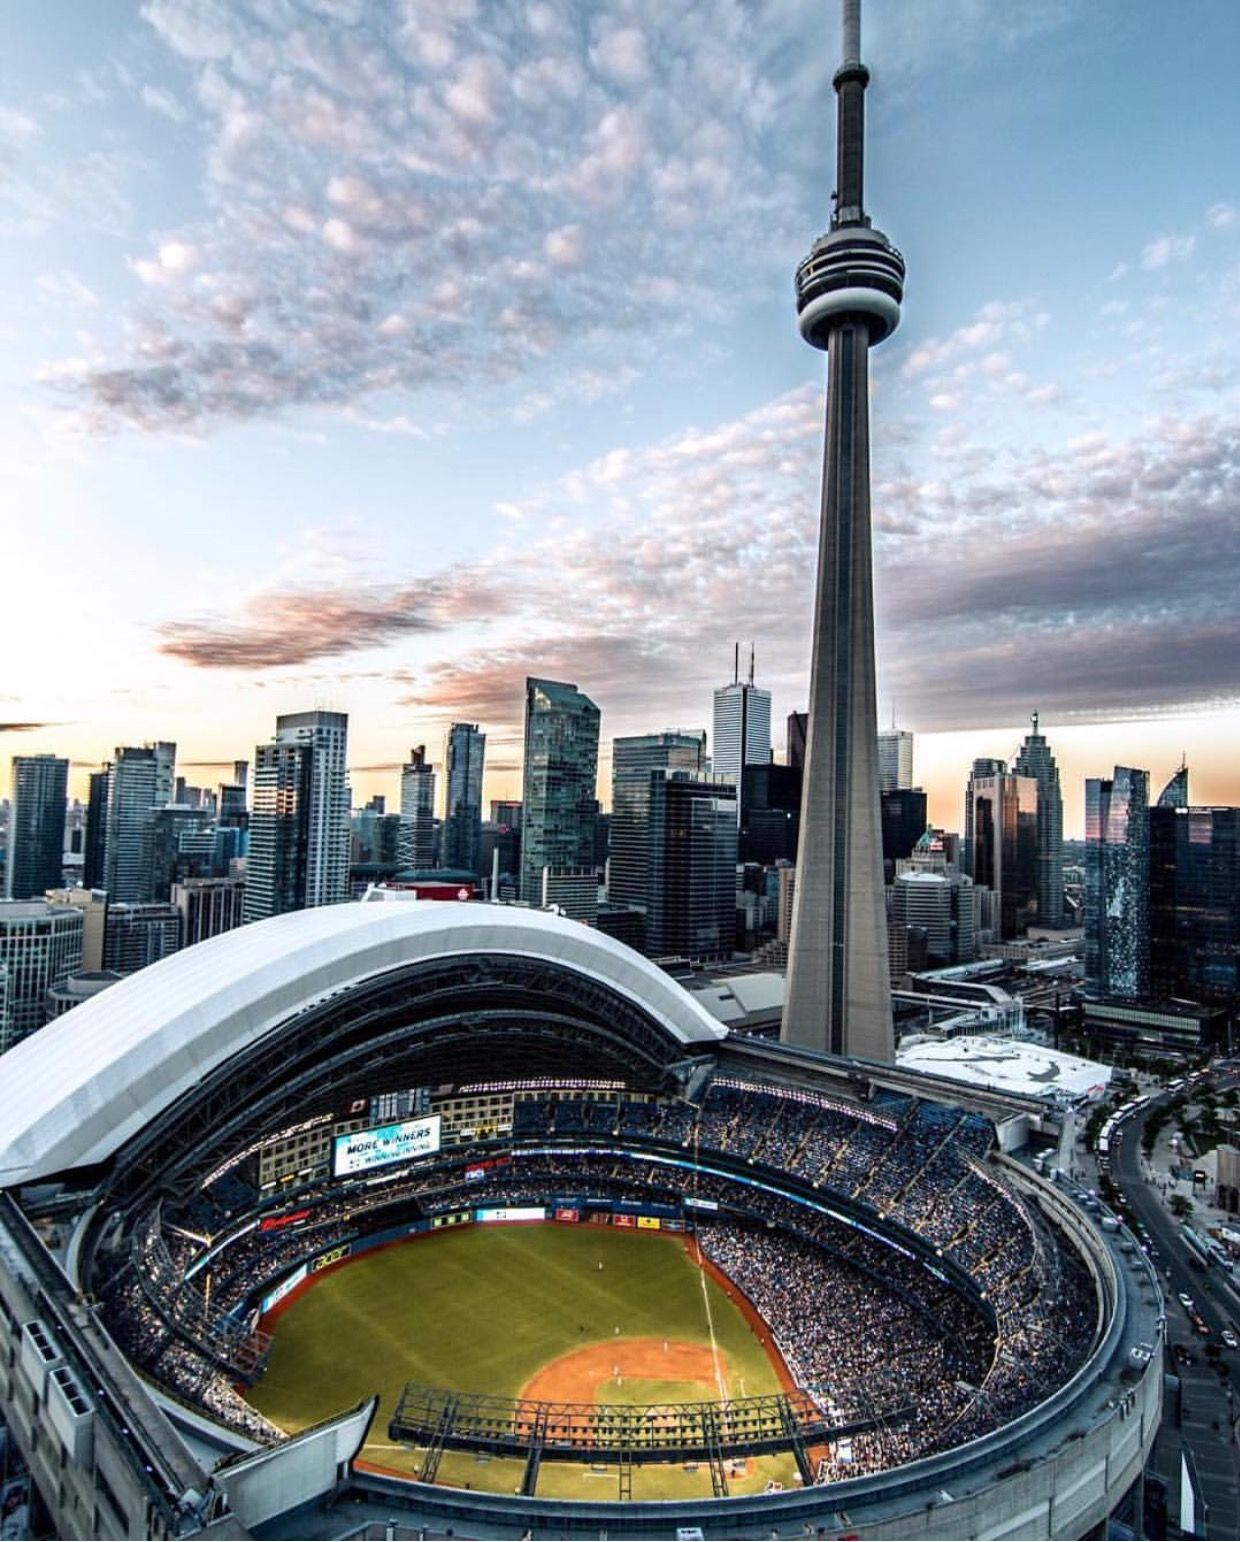 Pin By Dianne Watling On Toronto Canada Photography Toronto City Toronto Ontario Canada